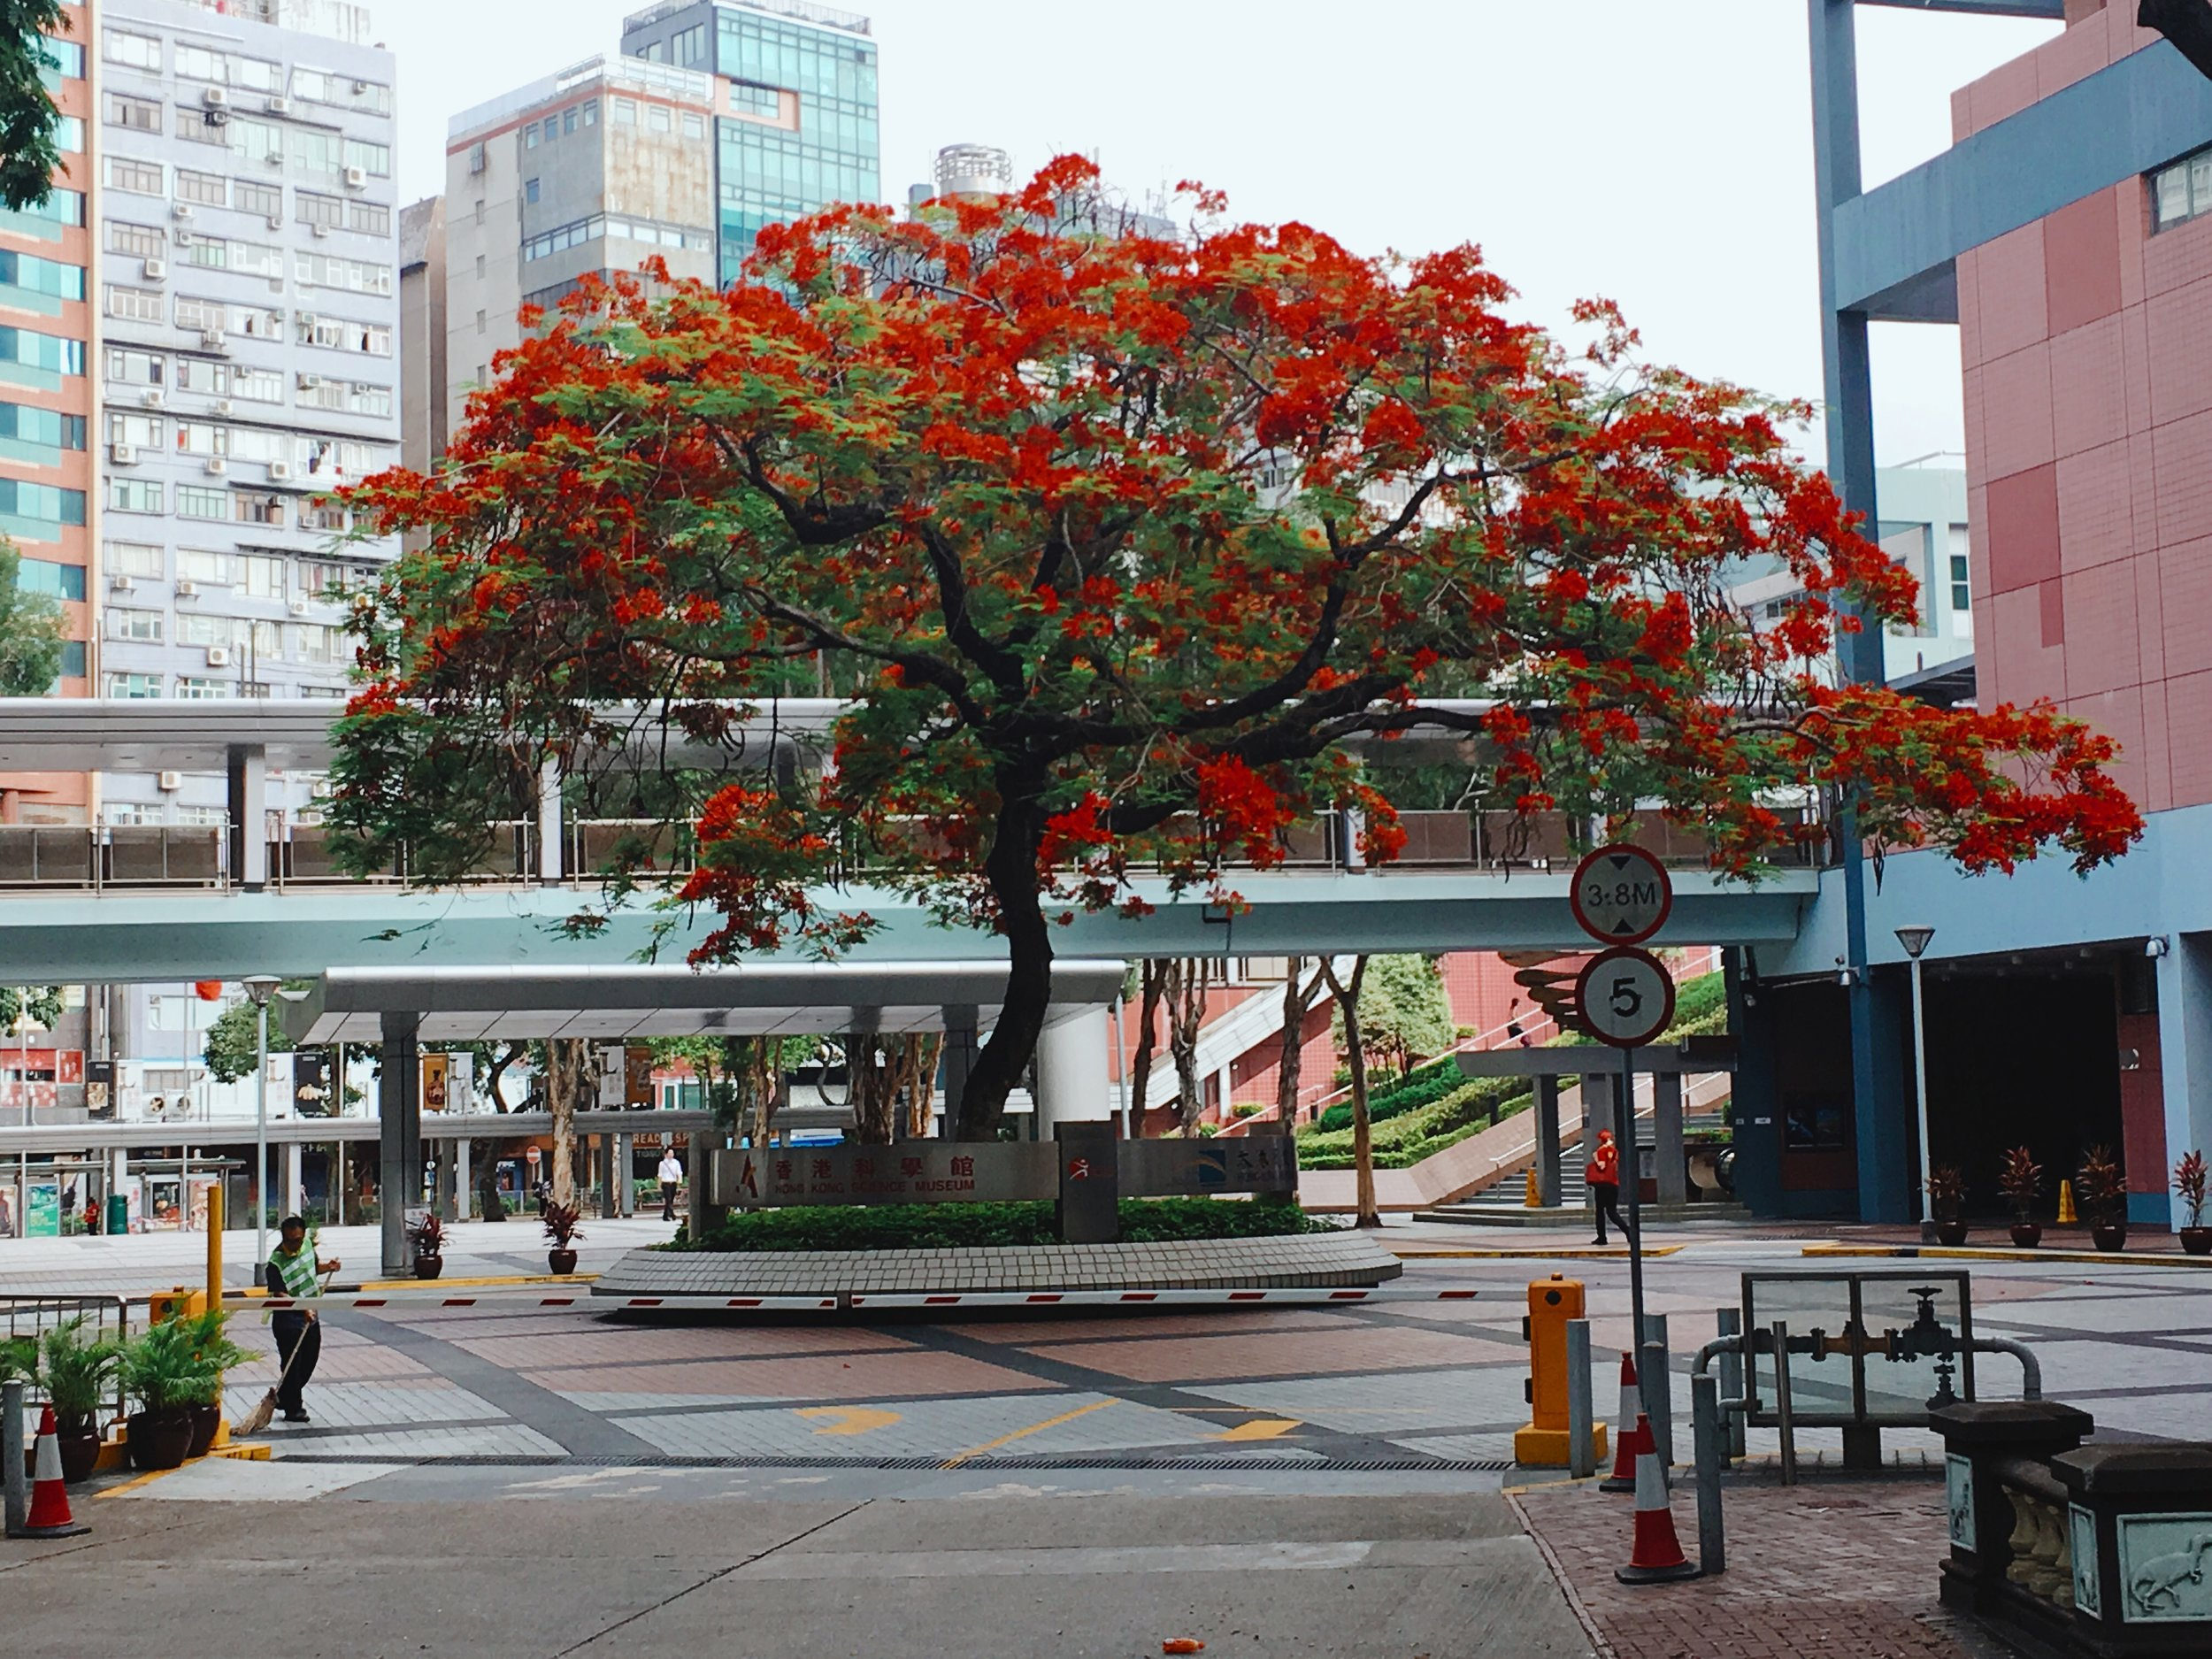 "HONG KONG HISTORY MUSEUM FLAME OF THE FOREST TREE  (All Rights Reserved, WilliamBanzai7, 2018)  Delonix regia, the flame tree, is a species of flowering plant in the bean family Fabaceae, subfamily Caesalpinioideae. It is noted for its fern-like leaves and flamboyant display of flowers. In many tropical parts of the world it is grown as an ornamental tree and in English it is given the name royal poinciana or flamboyant. It is also one of several trees known as ""flame tree"". [Source: Wikipedia]  Among the great early summer joys in Hong Kong is the sight of magnificent flame of the forest trees coming into flower along Hong Kong's roadsides. Throughout May and June, this spectacular, showy tree becomes immediately recognisable for the vivid red blossoms covering its spreading canopy.  Hong Kong Island's southern coast has numerous mature specimens in surviving old gardens, especially around Deep Water Bay, Repulse Bay and Stanley. For decades, the Repulse Bay Hotel was internationally famed for its flame of the forest trees, which featured prominently on postcards and the hotel's own advertising material. [Source: Jason Wordie SCMP]  Photographically, these magnificent brightly colored trees provide a wonderful visual enhancement whenever in image proximity.  To view more of my images of Hong Kong and Macau, please visit my  Flickr Stream  or visit me on Instagram:  @williambanzai7 .   Hope to see you soon on the Streets of Hong Kong or Macau!   WB7  End of Dispatch"